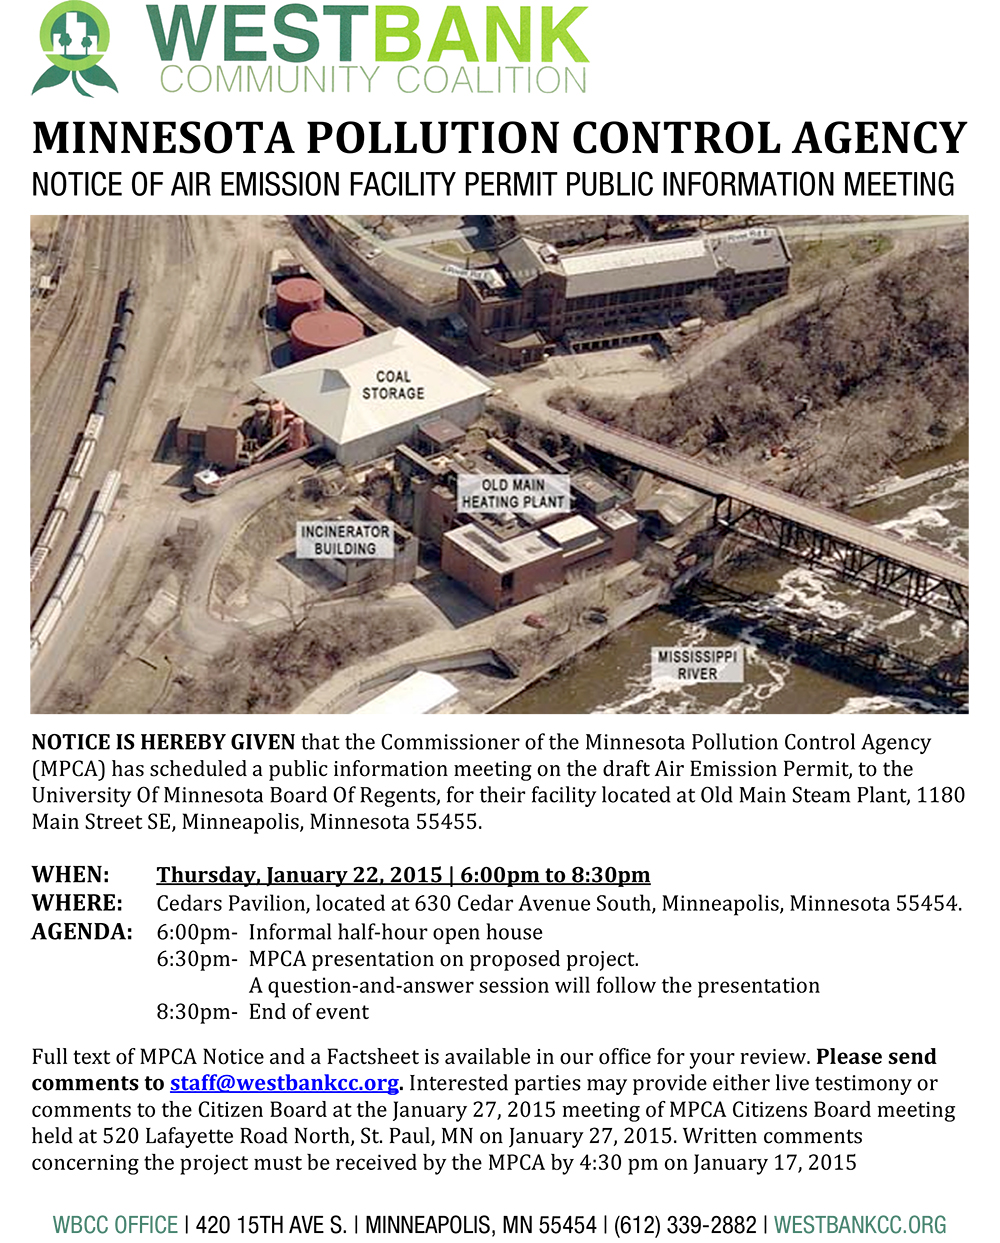 Minnesota Pollution Control Agency's Informational Meeting